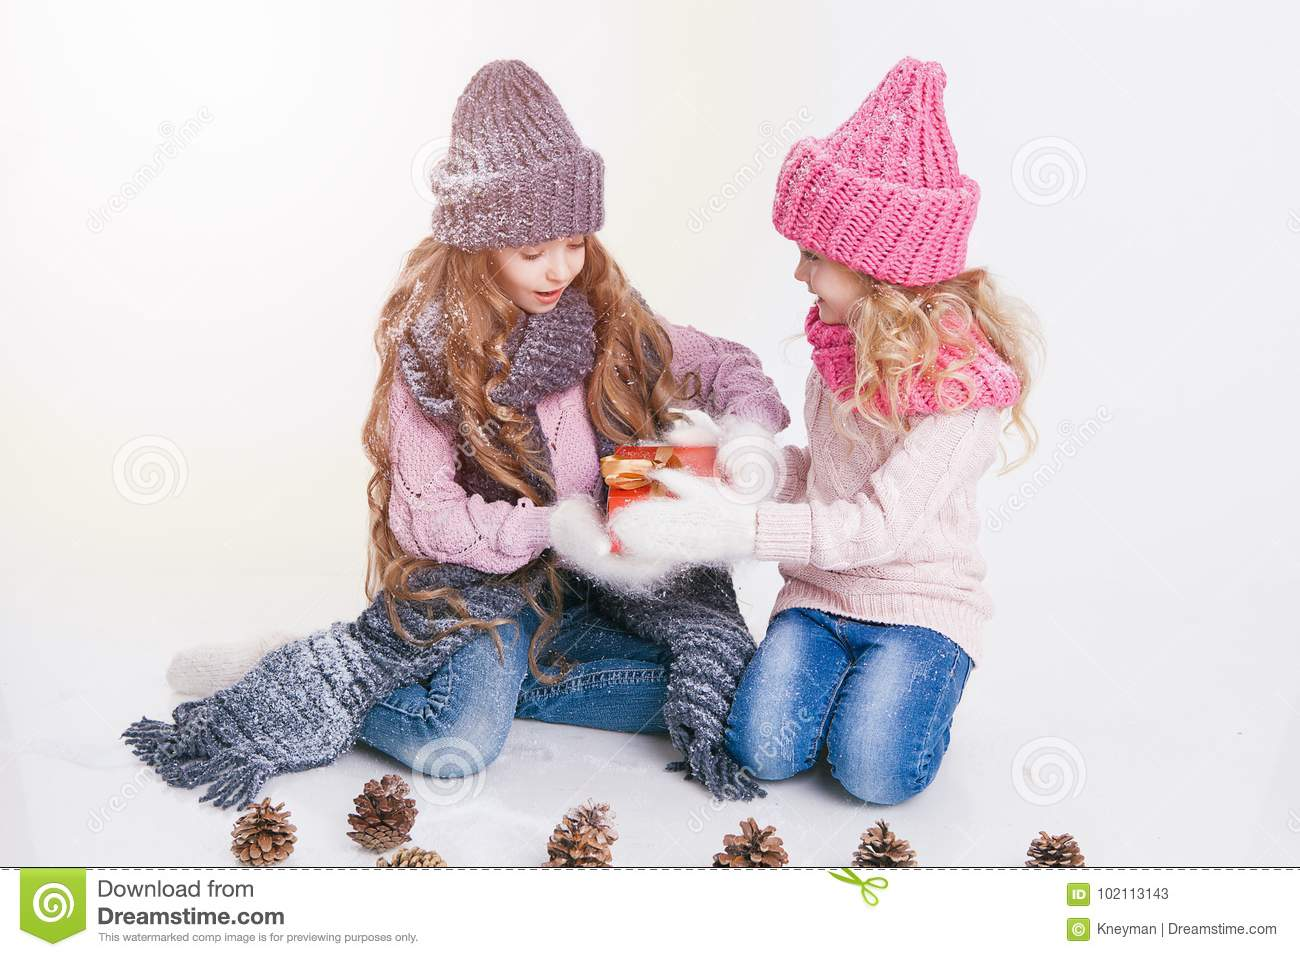 Christmas. New Year. Two little sisters holding present in winter clothes. Pink and grey hats and scarfs. Family. Winter